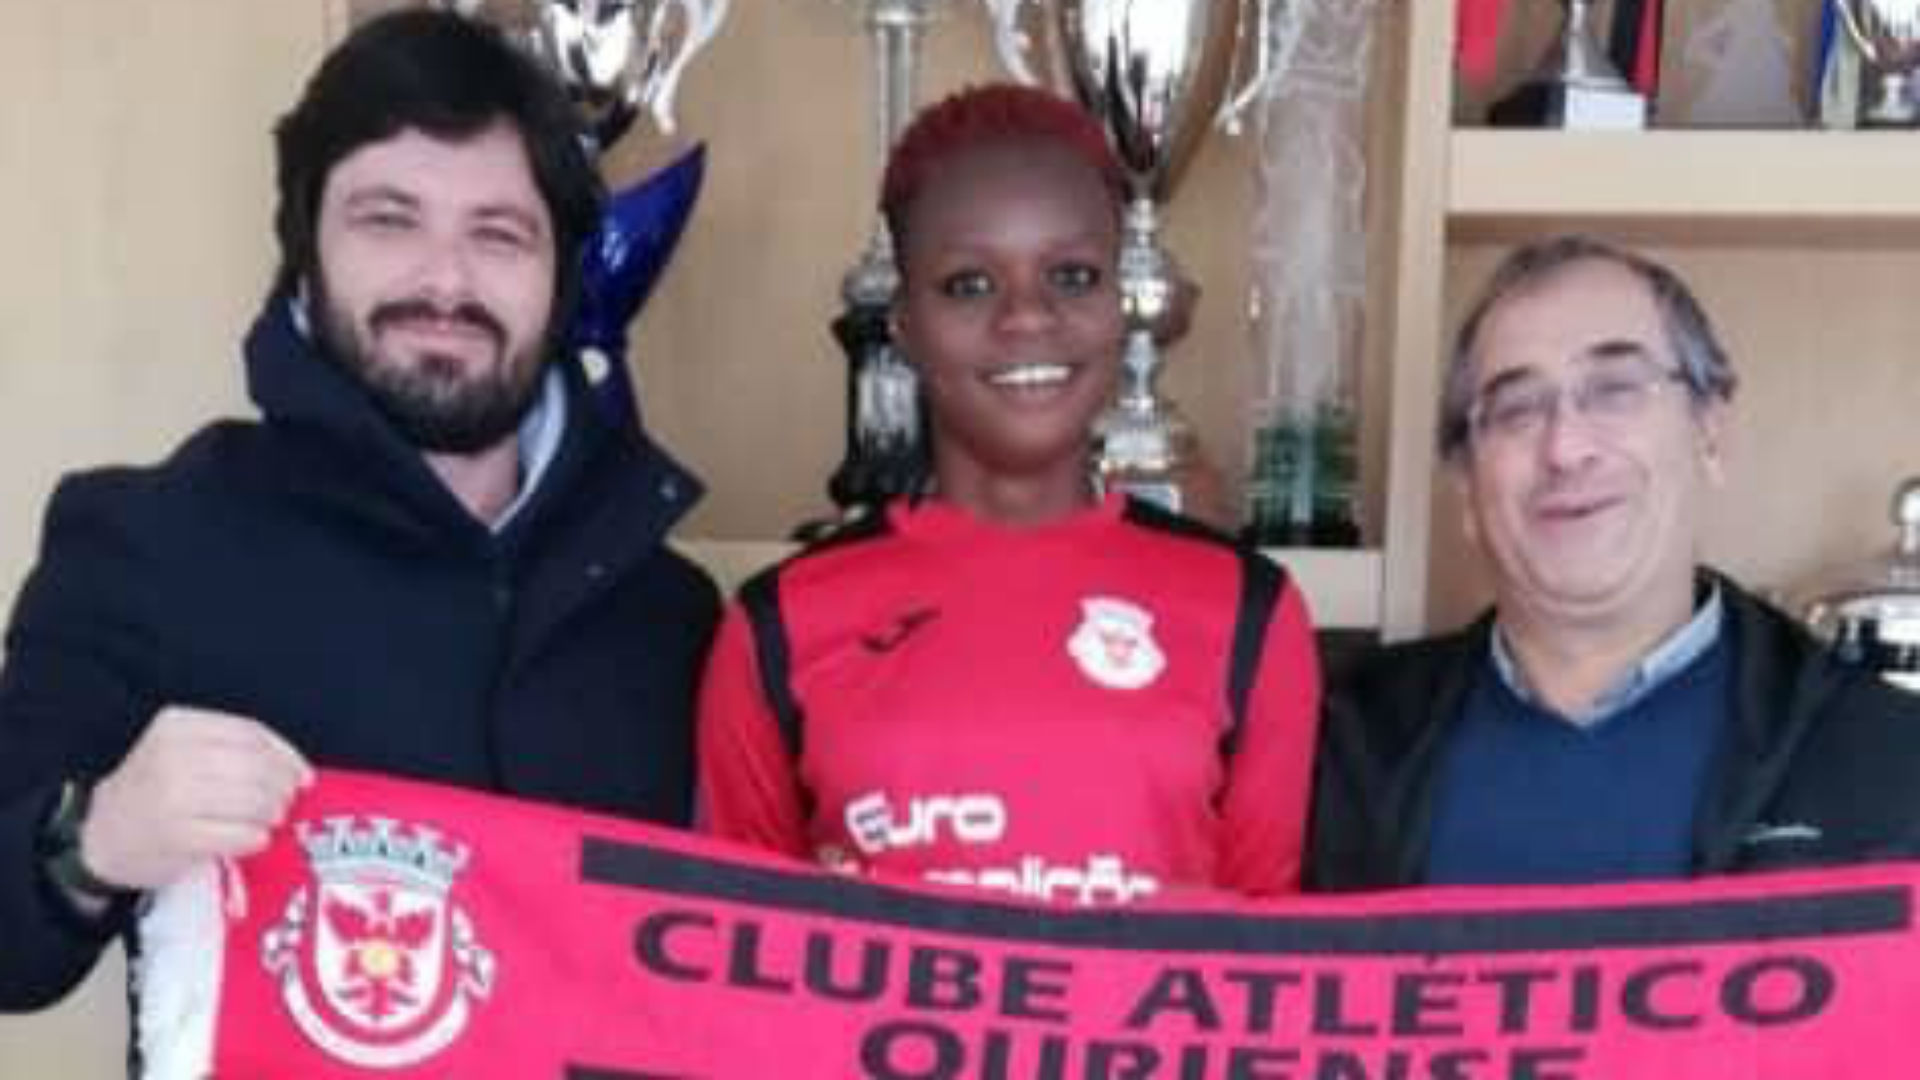 Aquino: Atletico Ouriense seal the signing of Harambee Starlets ace